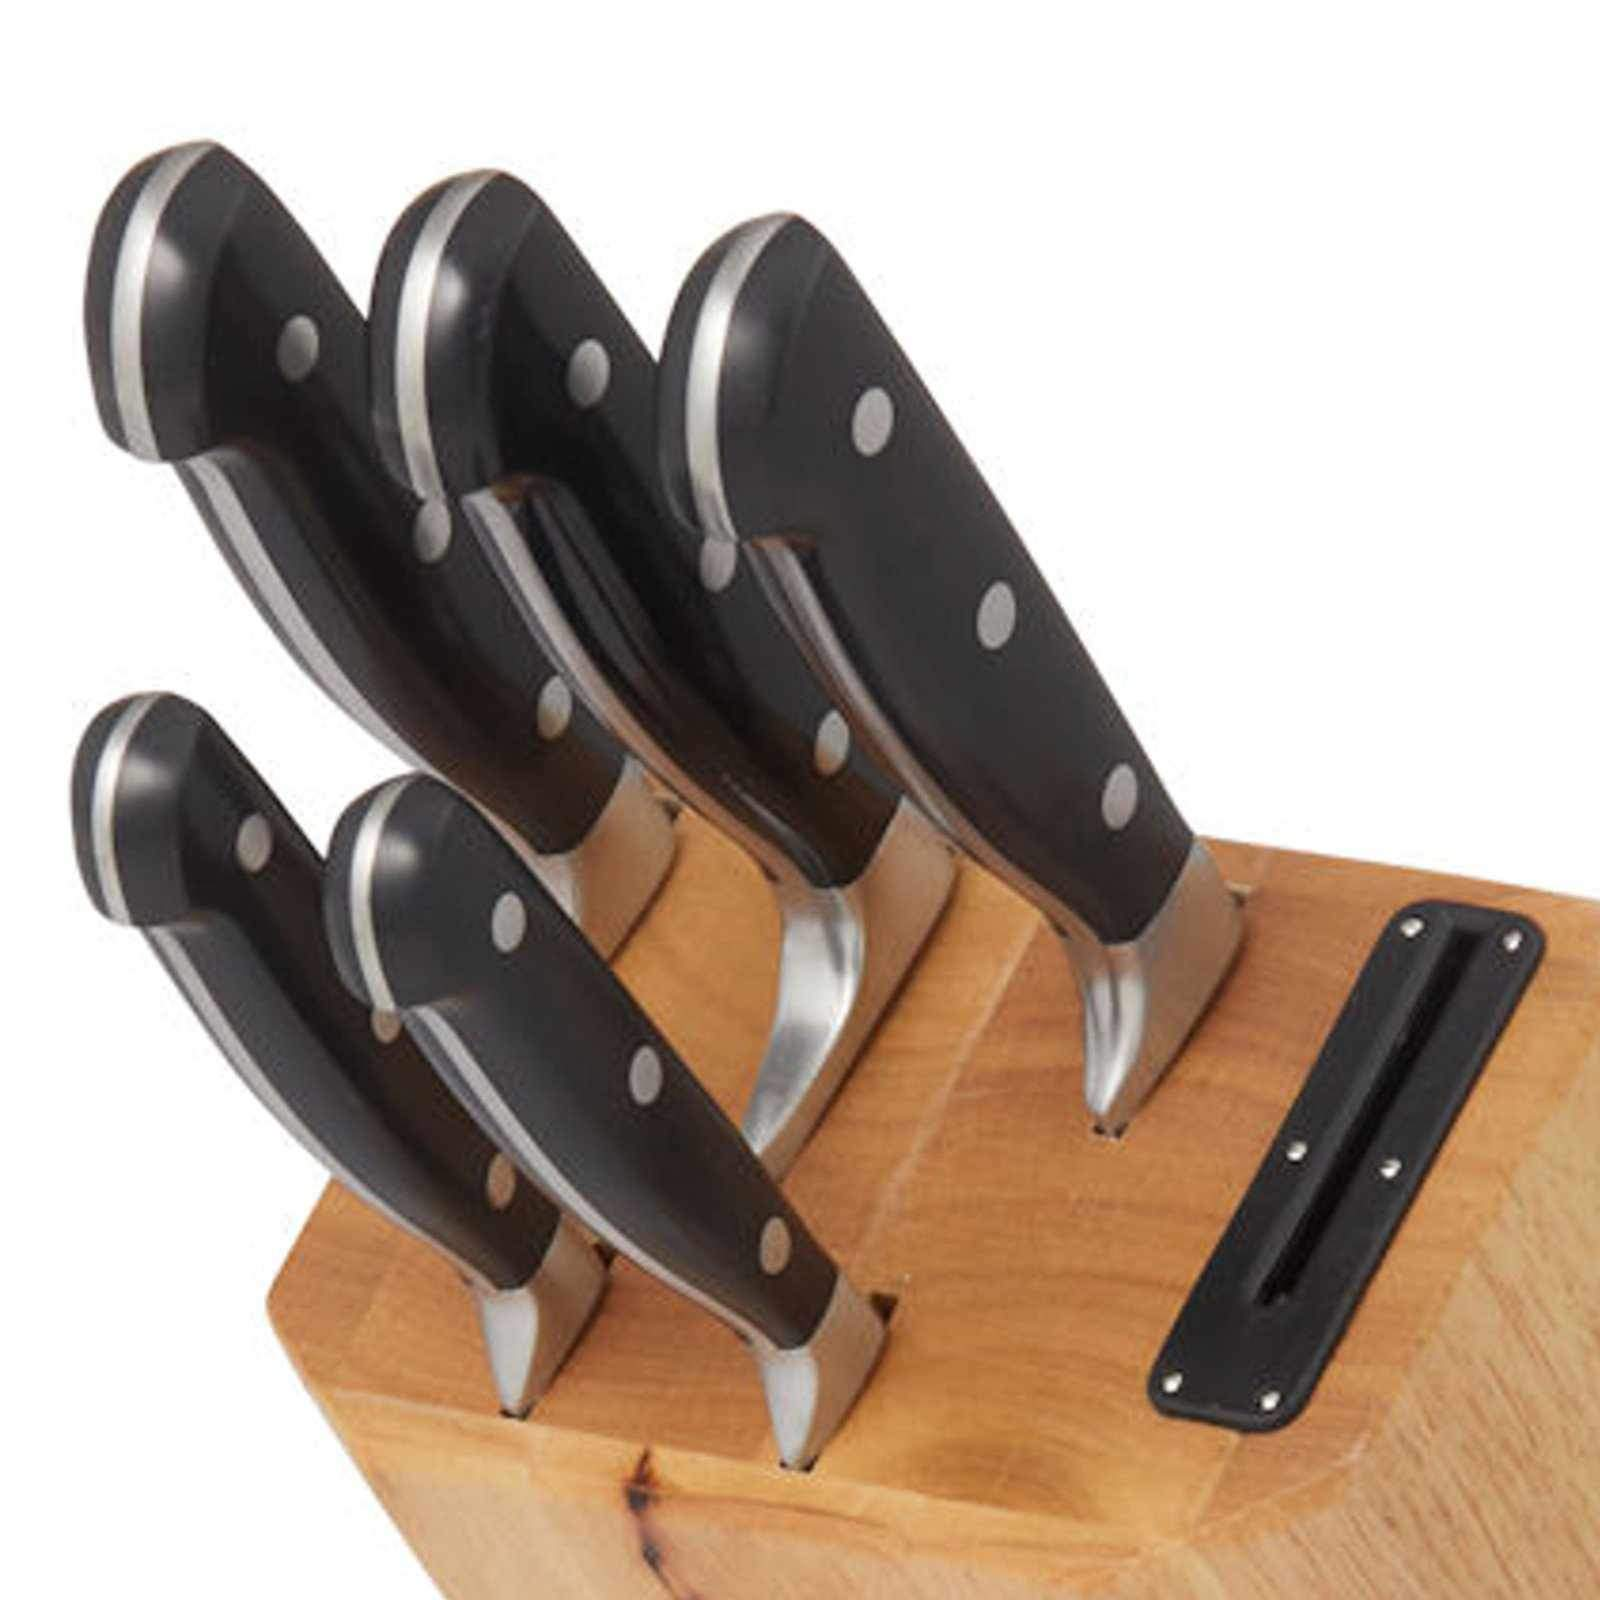 MasterPro Knife Block Set - Professional 6 Pcs Knives Set-knife-Chef's Quality Cookware